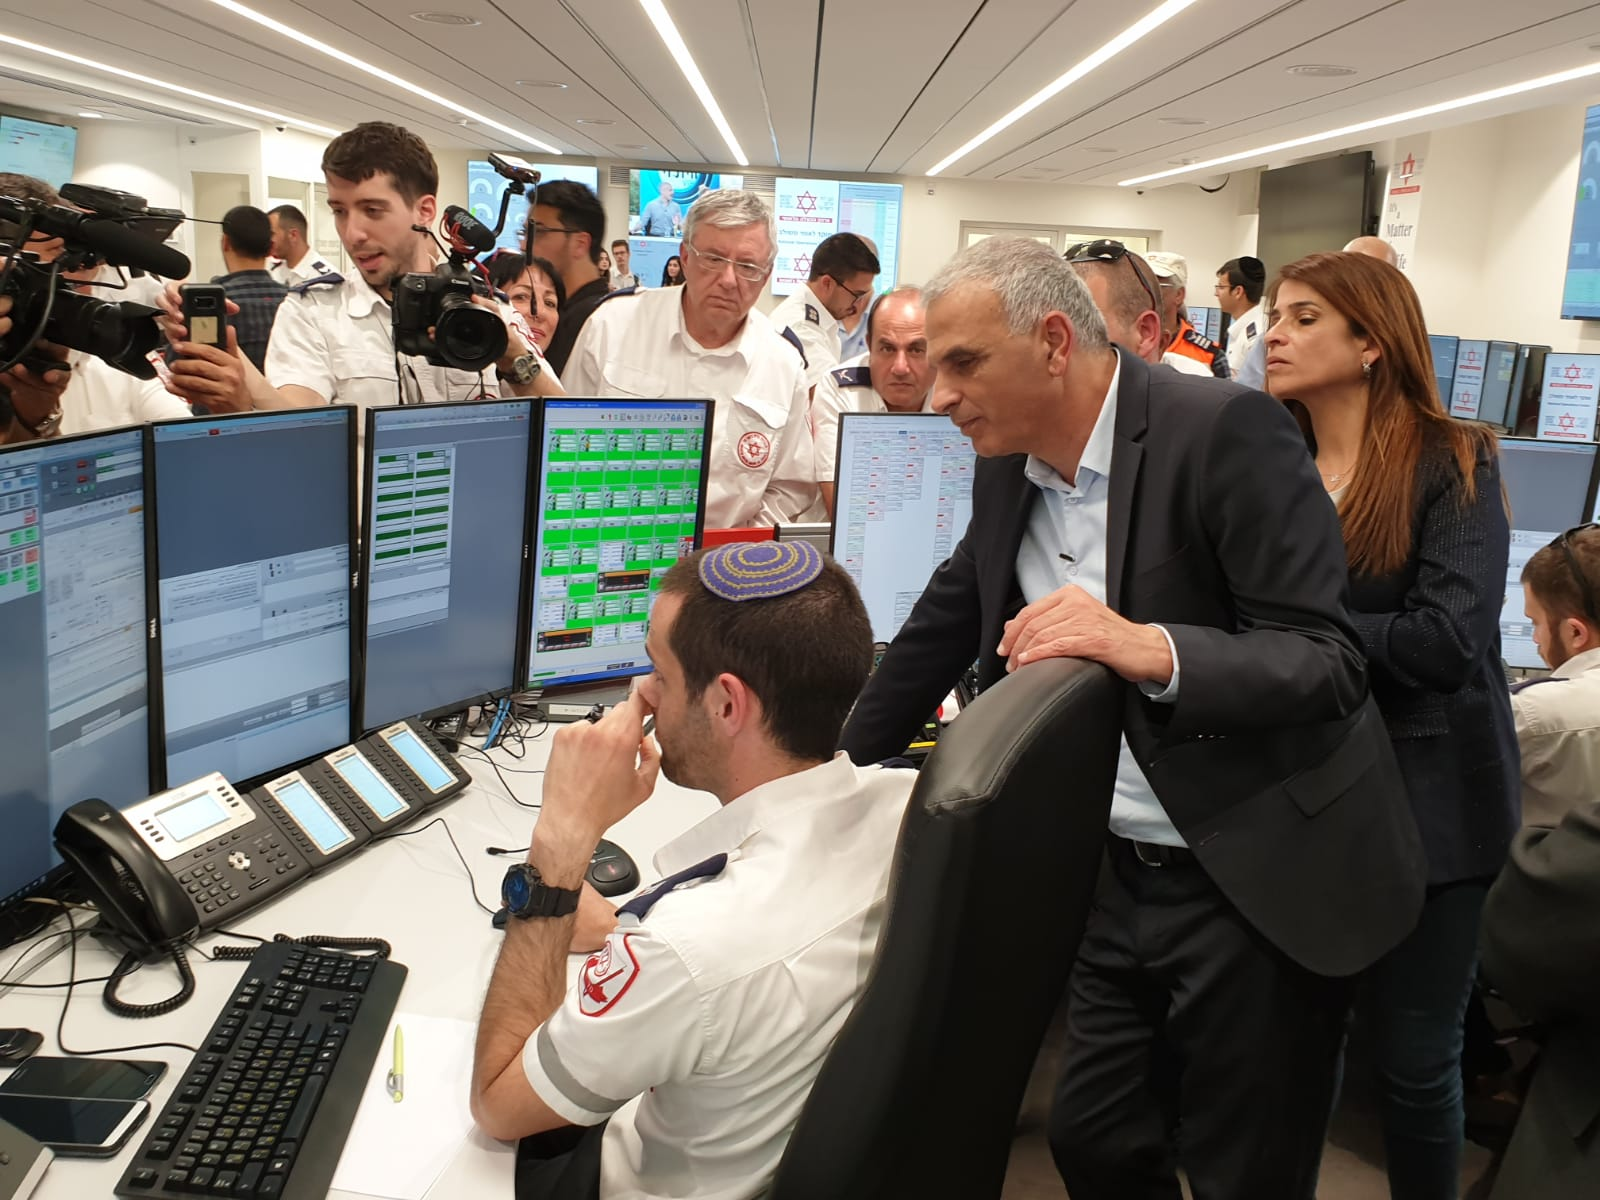 Magen David Adom Moves Its National Dispatch Center